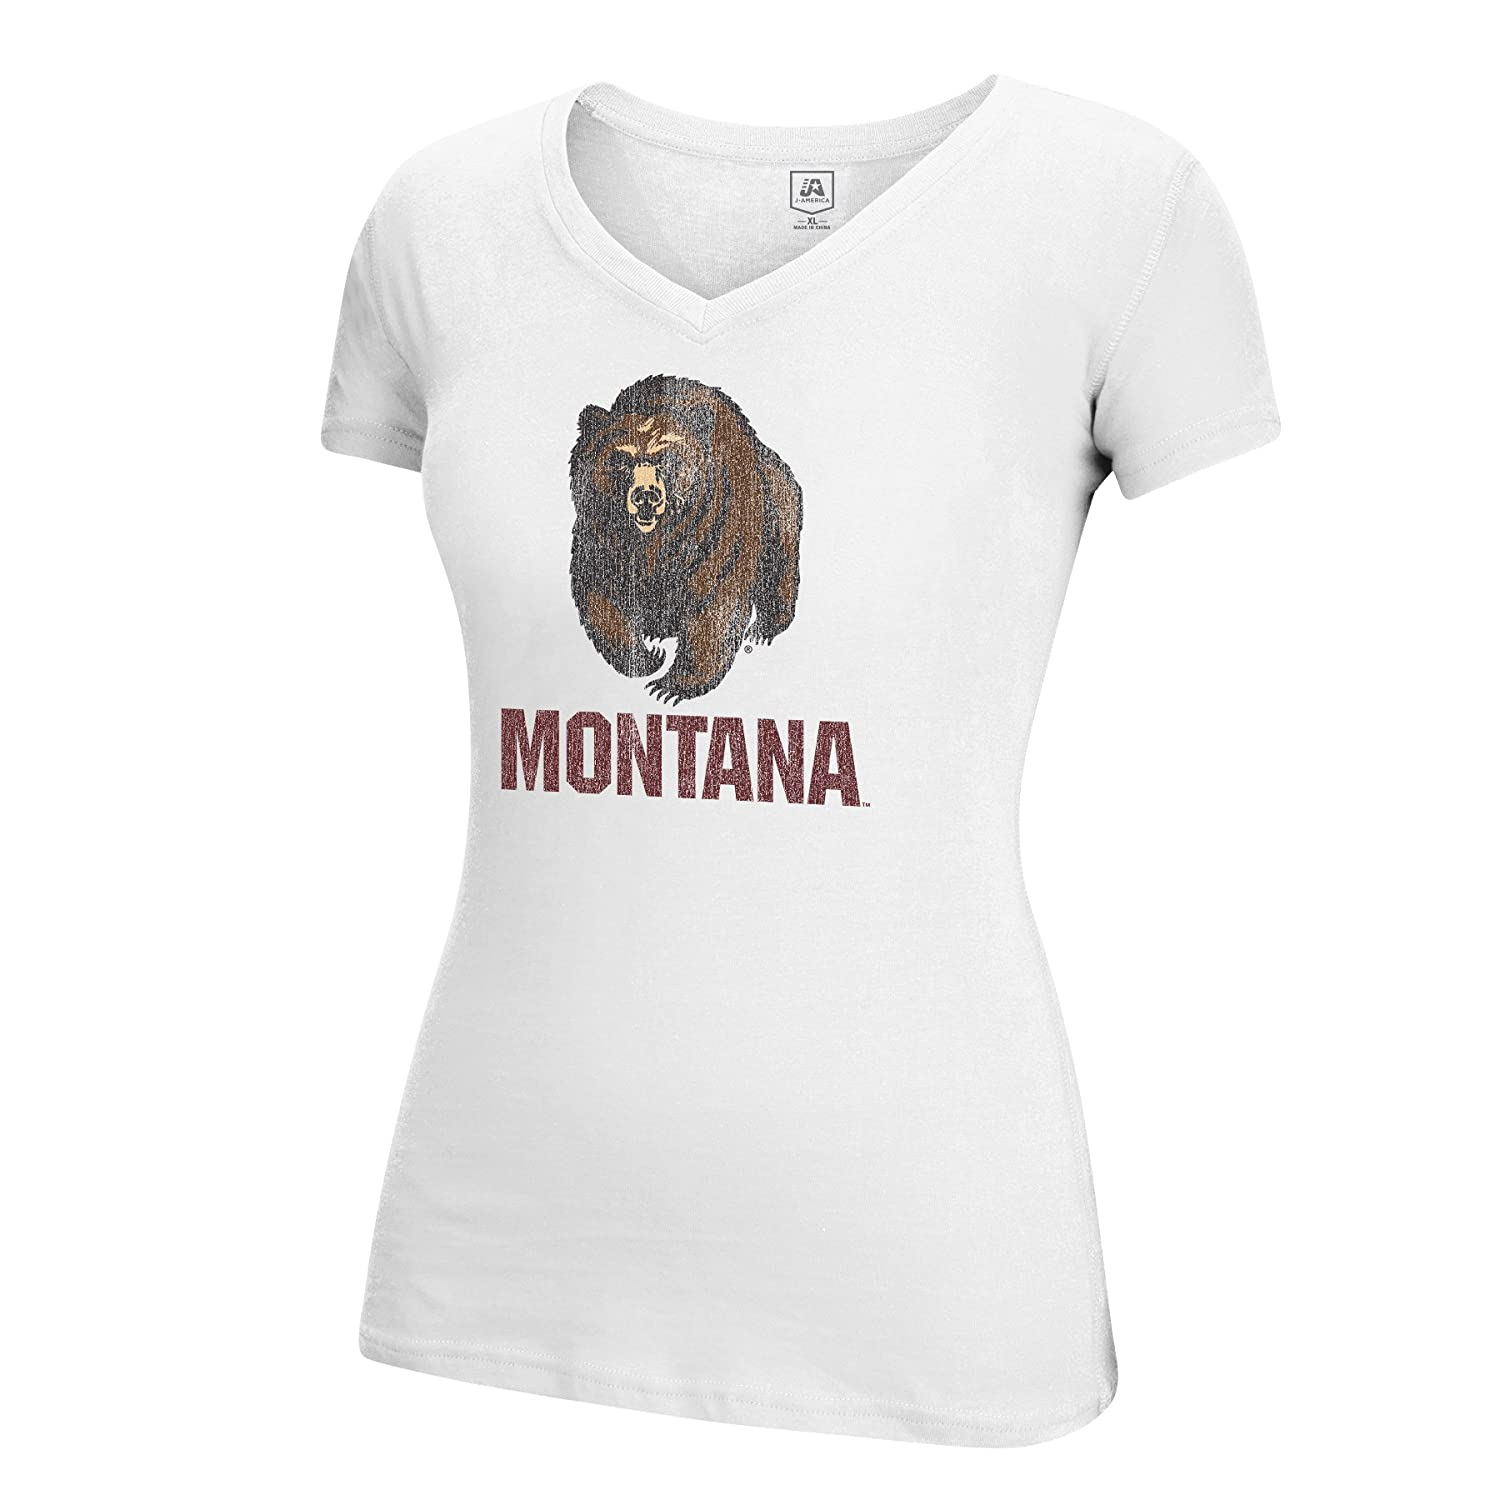 White J America NCAA Montana Grizzlies Adult Women Large Mascot Essential Tee Small